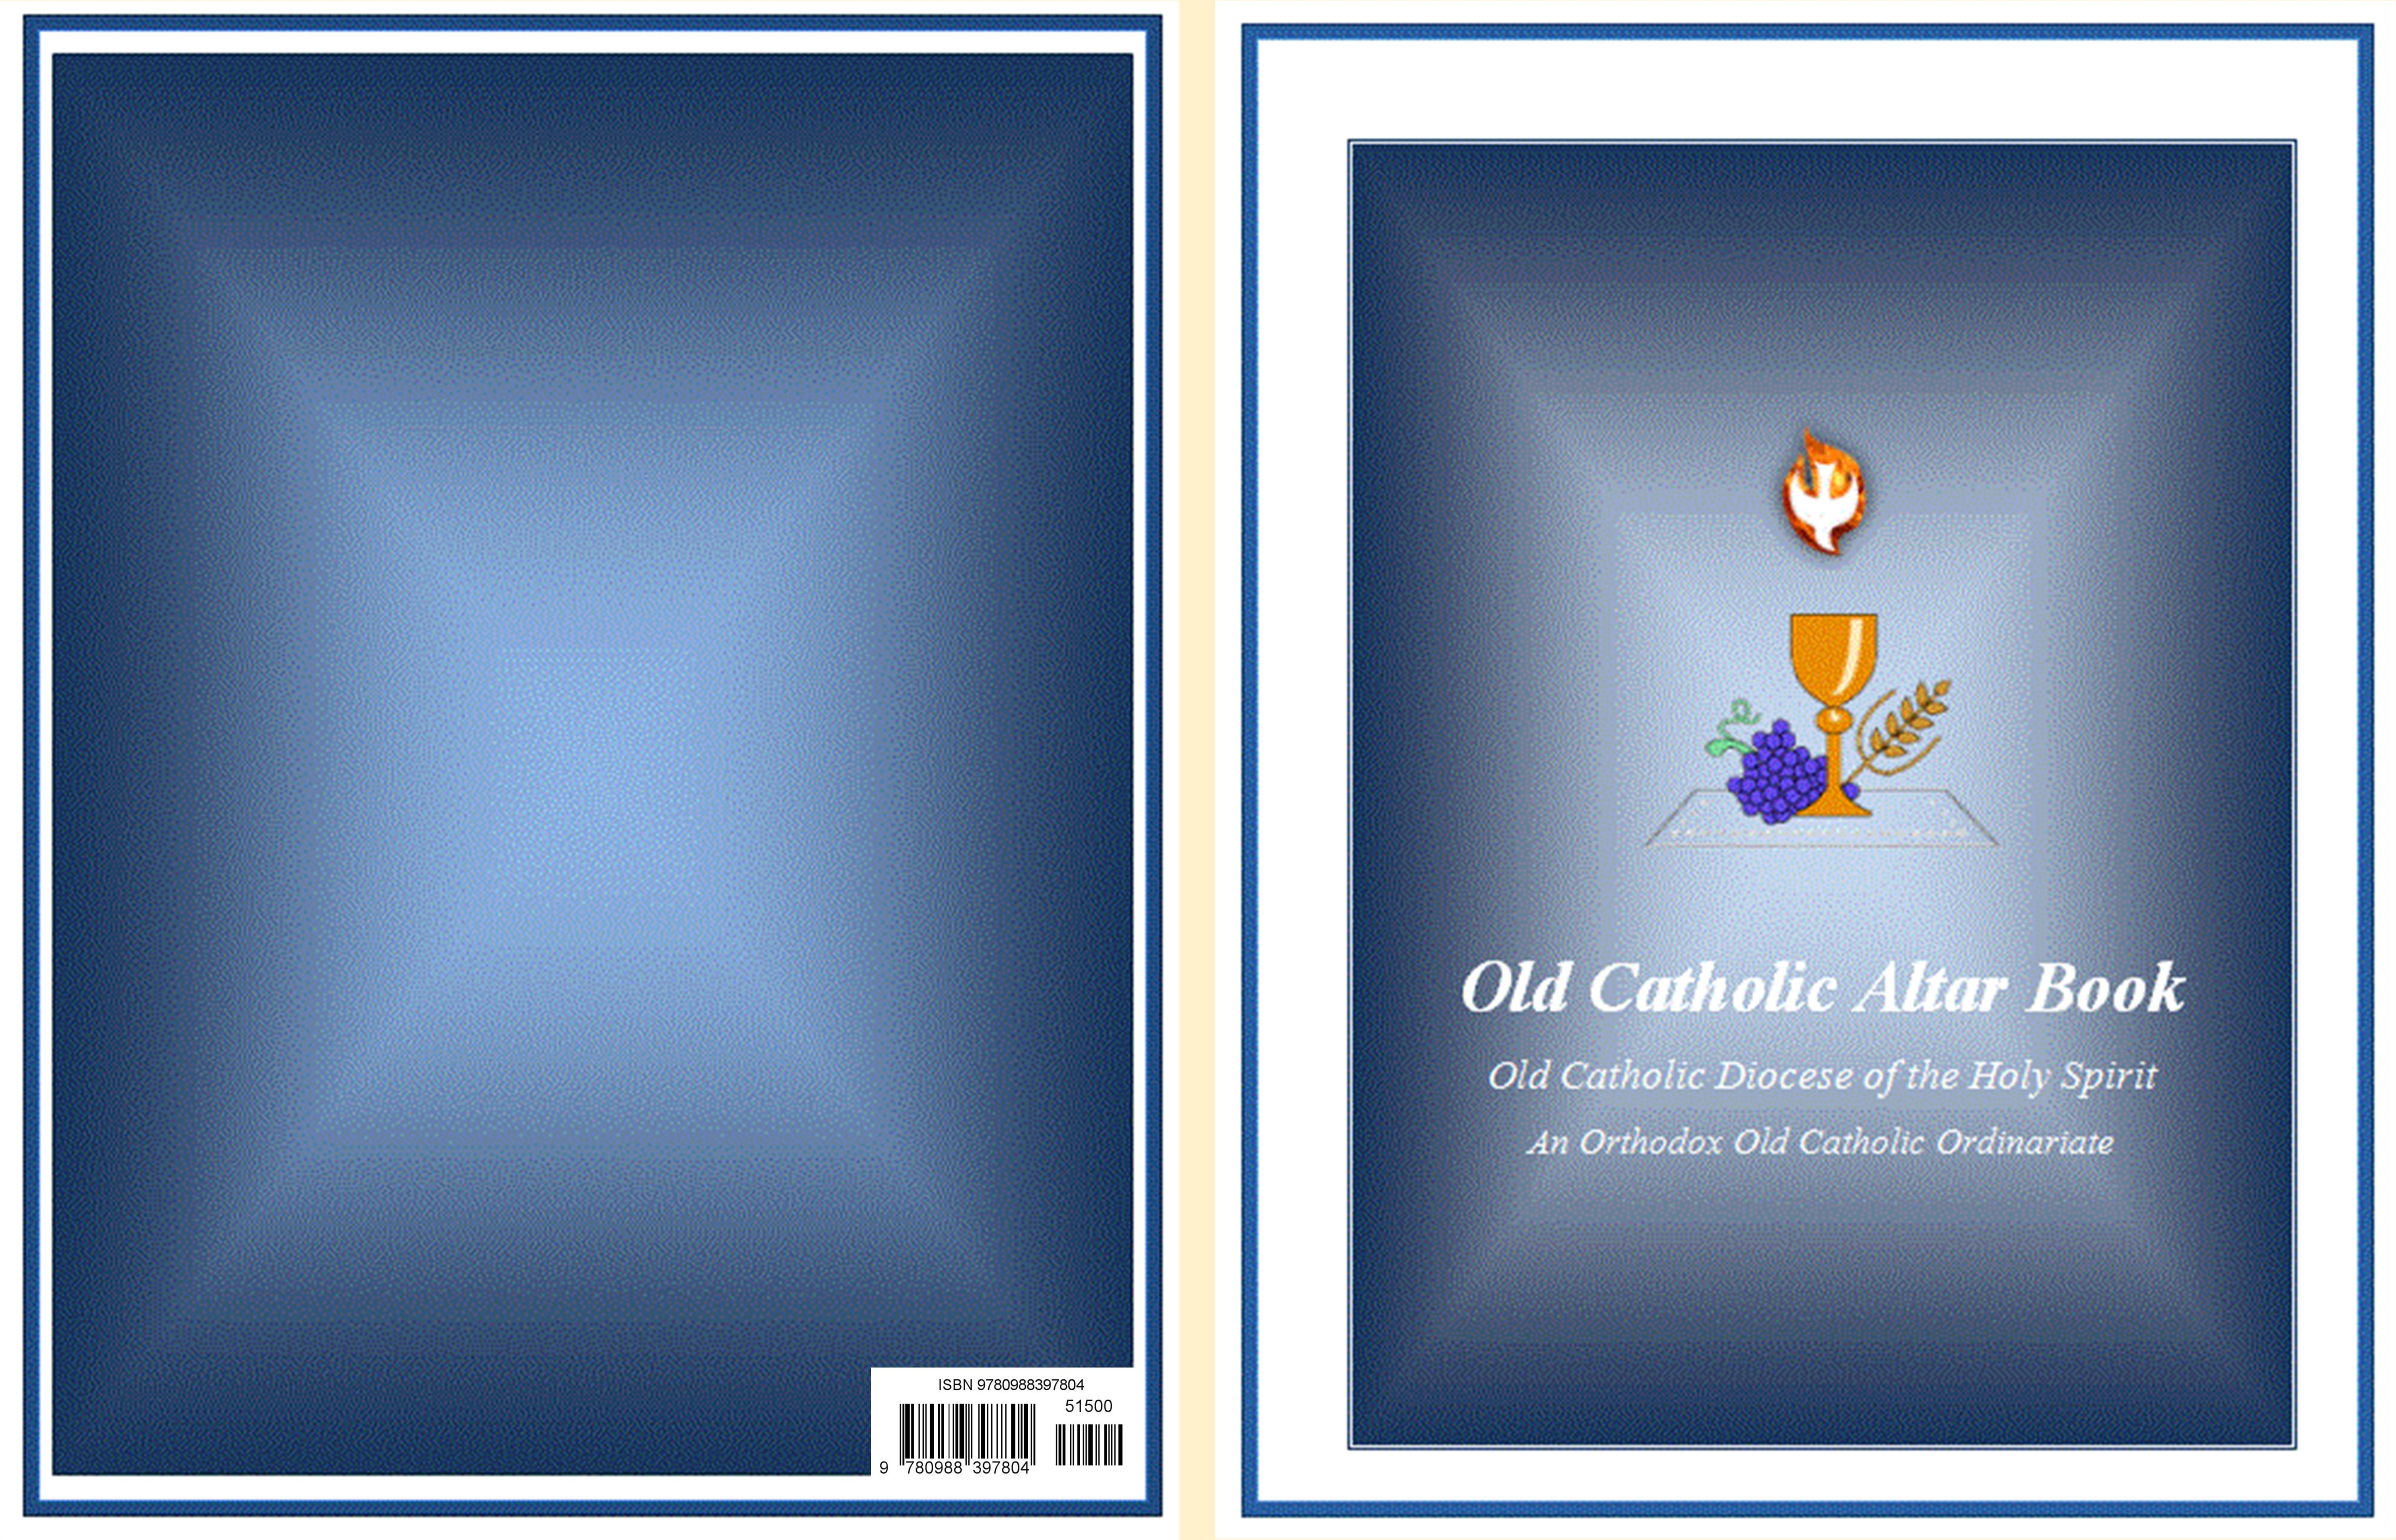 Old Catholic Altar Book cover image